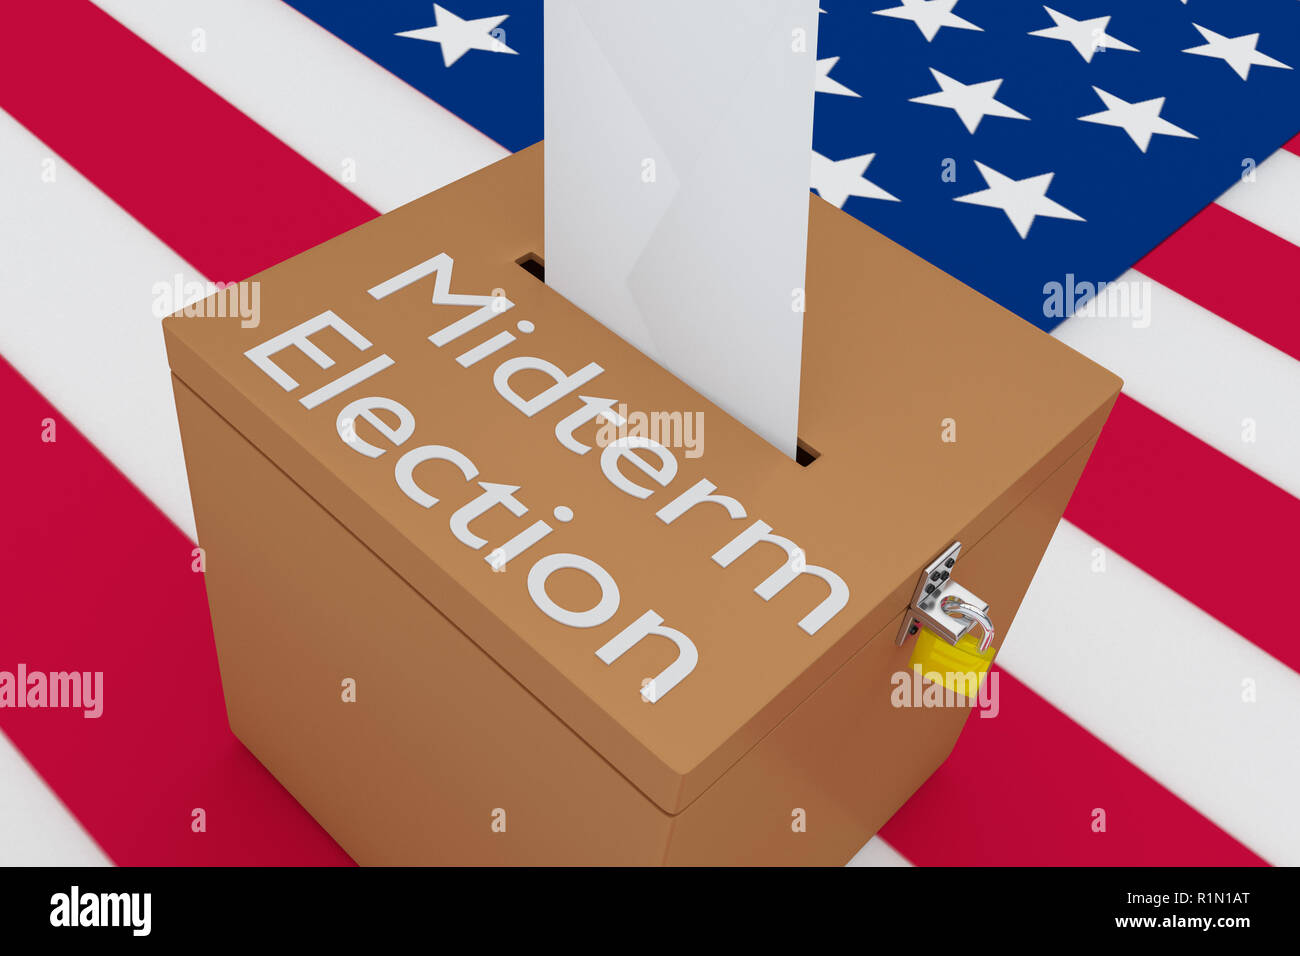 3D illustration of Midterm Election script on a ballot box, with US flag as a background. - Stock Image